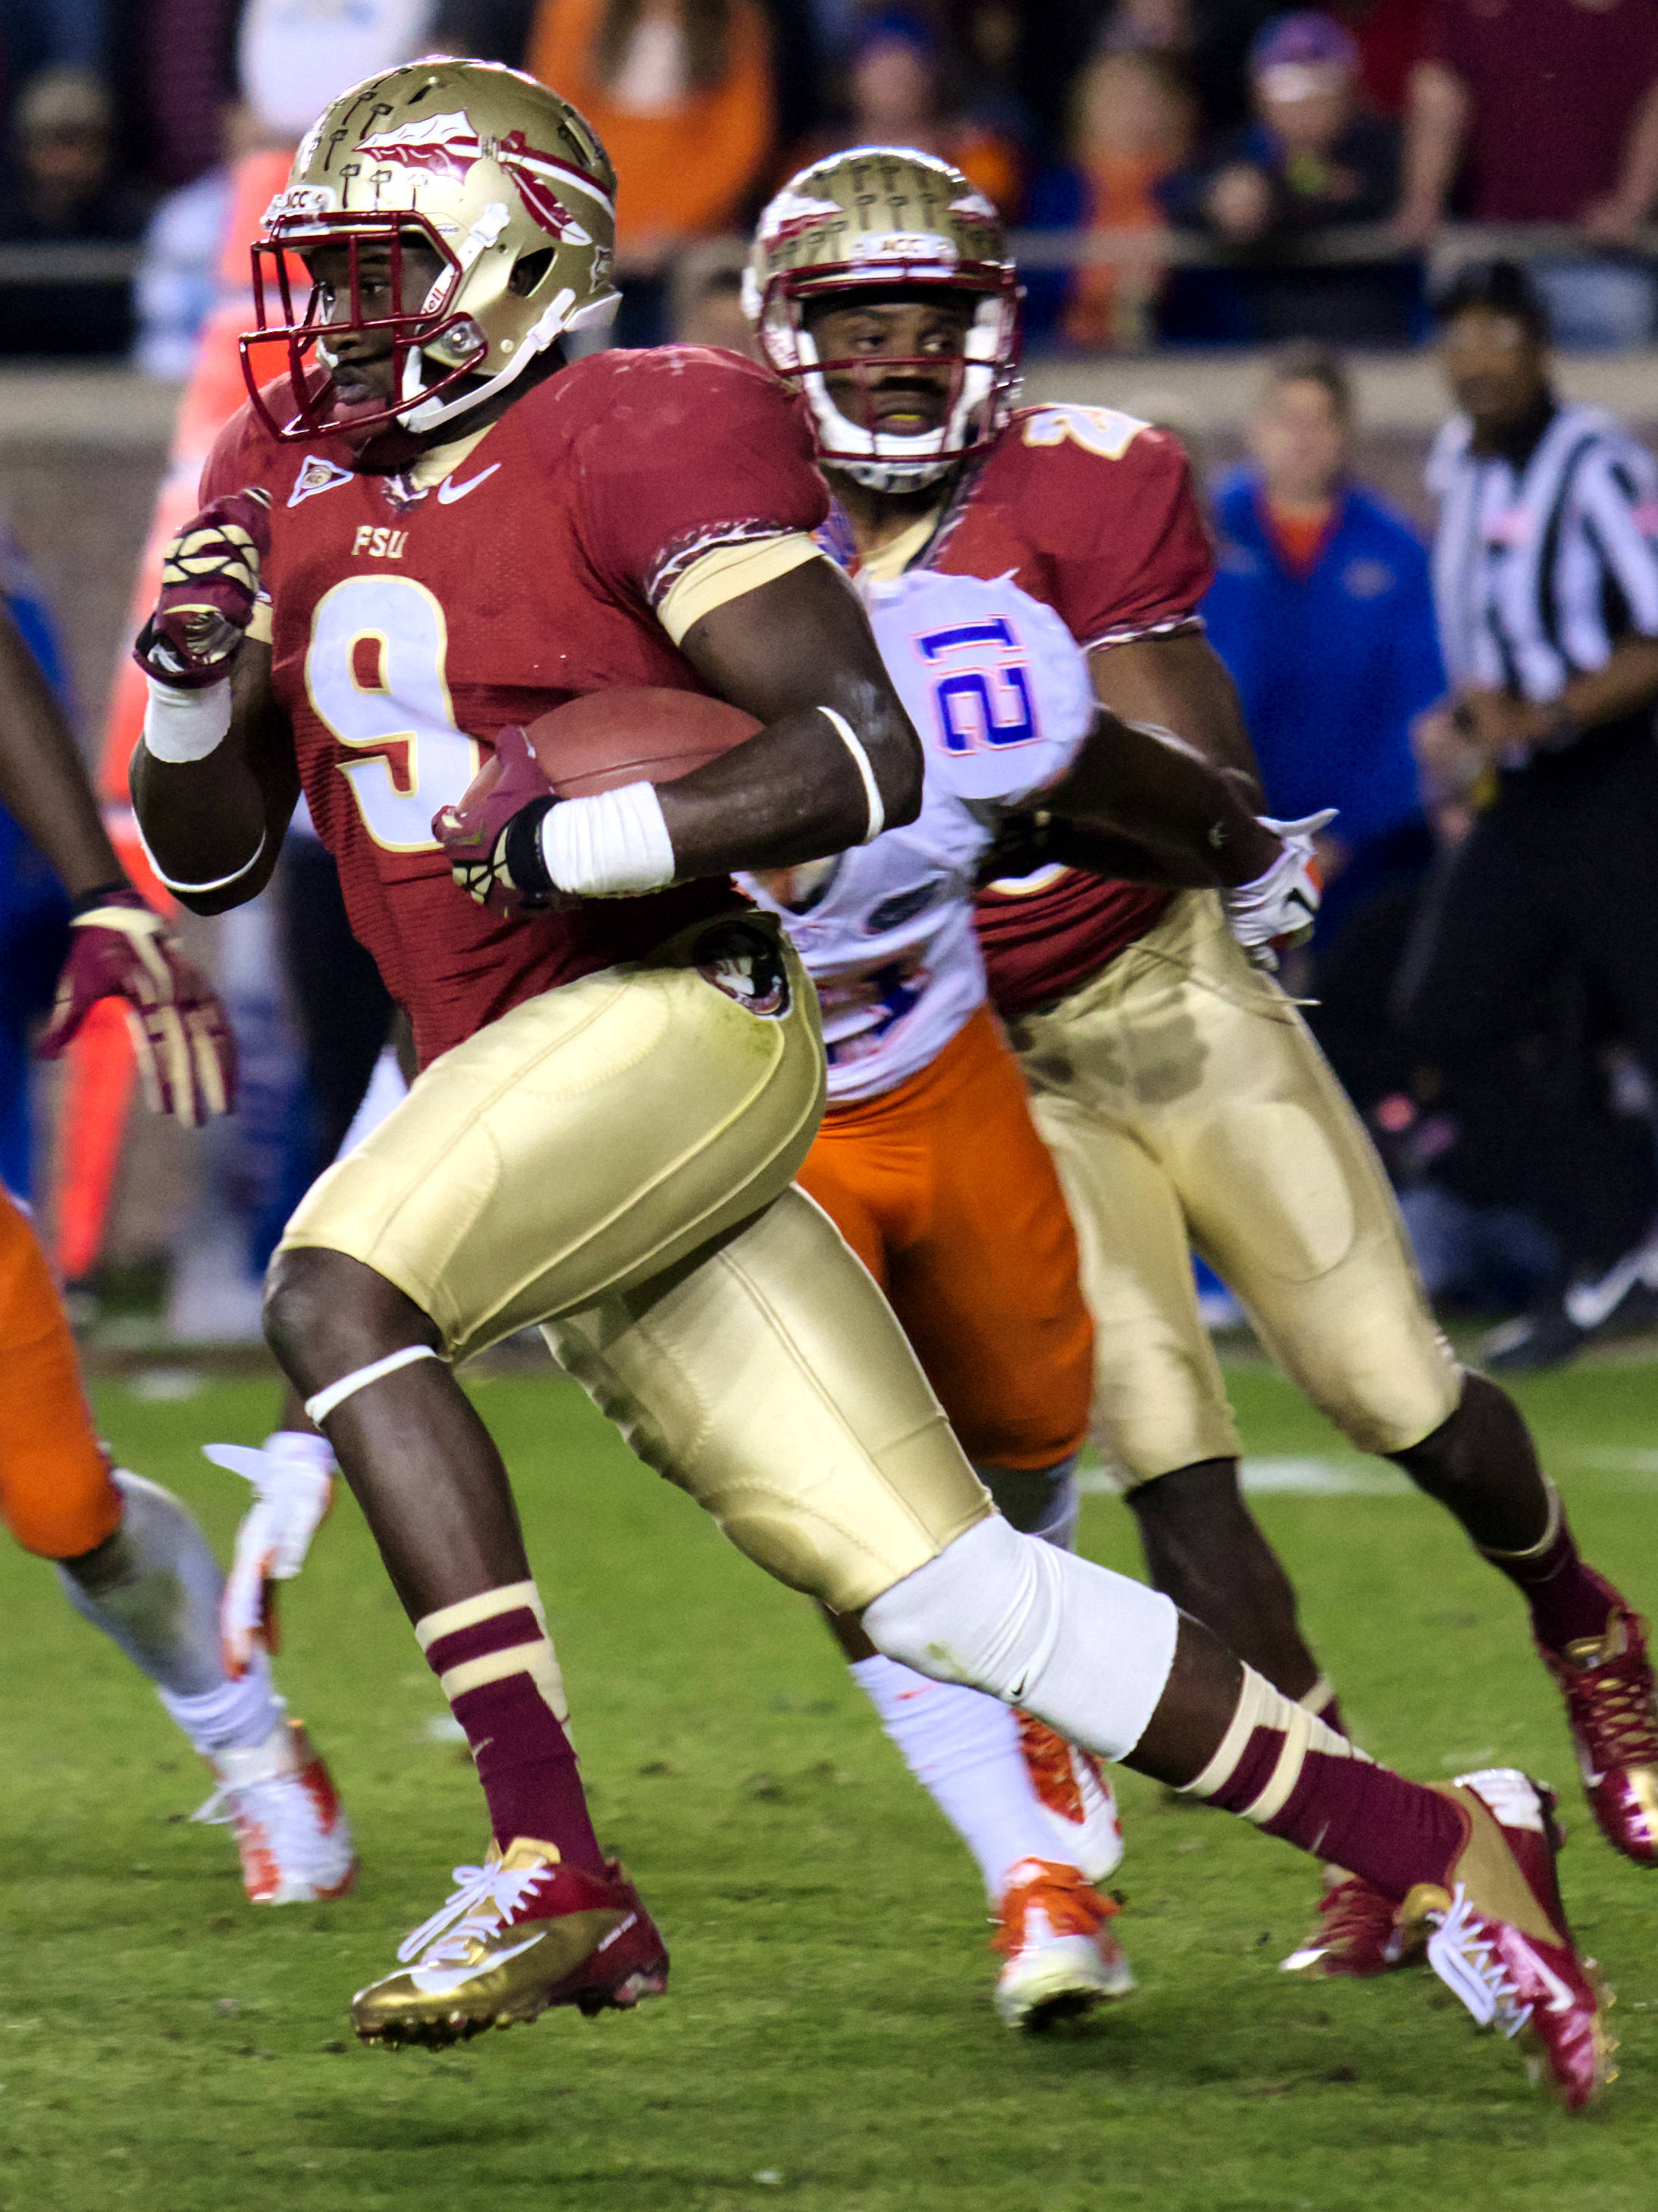 Karlos Williams (9), FSU vs Florida, 11/24/12. (Photo by Steve Musco)